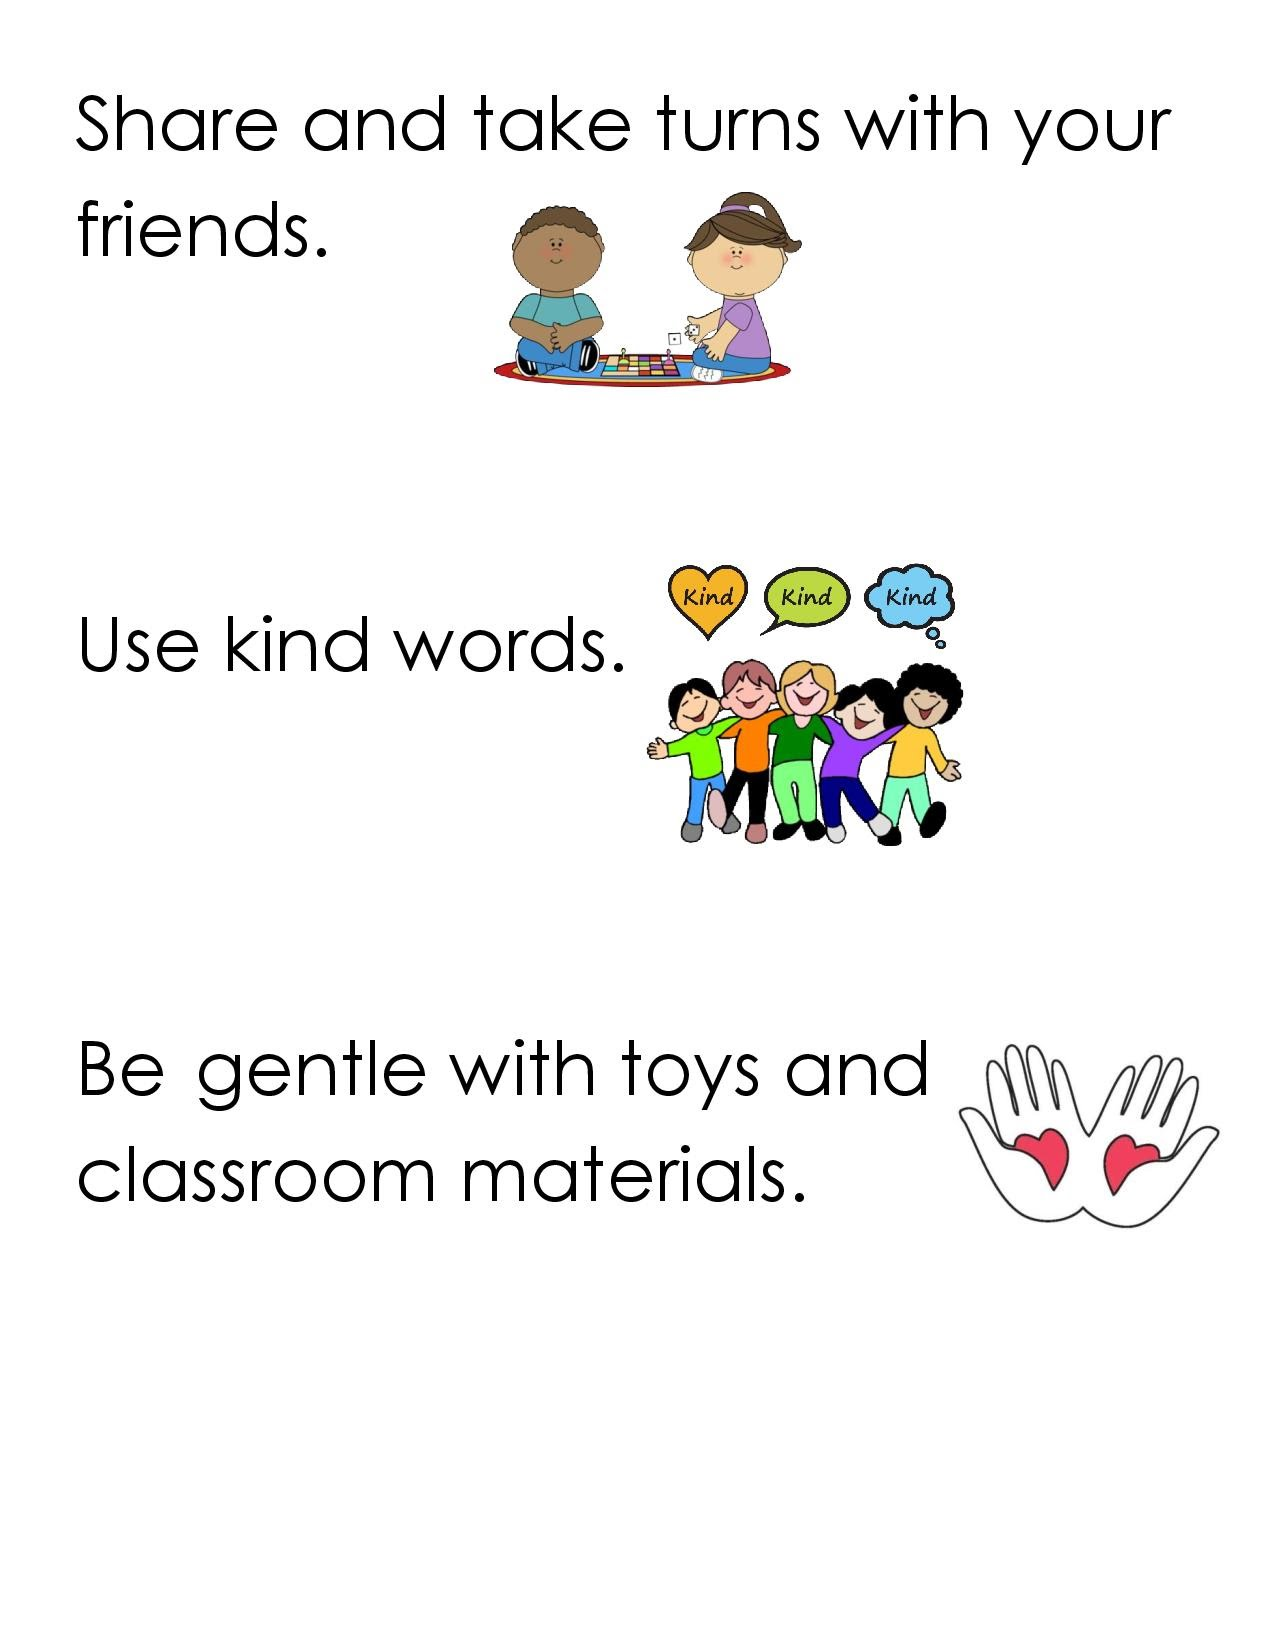 Share and take turns with your friends.  Use kind words.   Be gentle with toys and classroom materials.